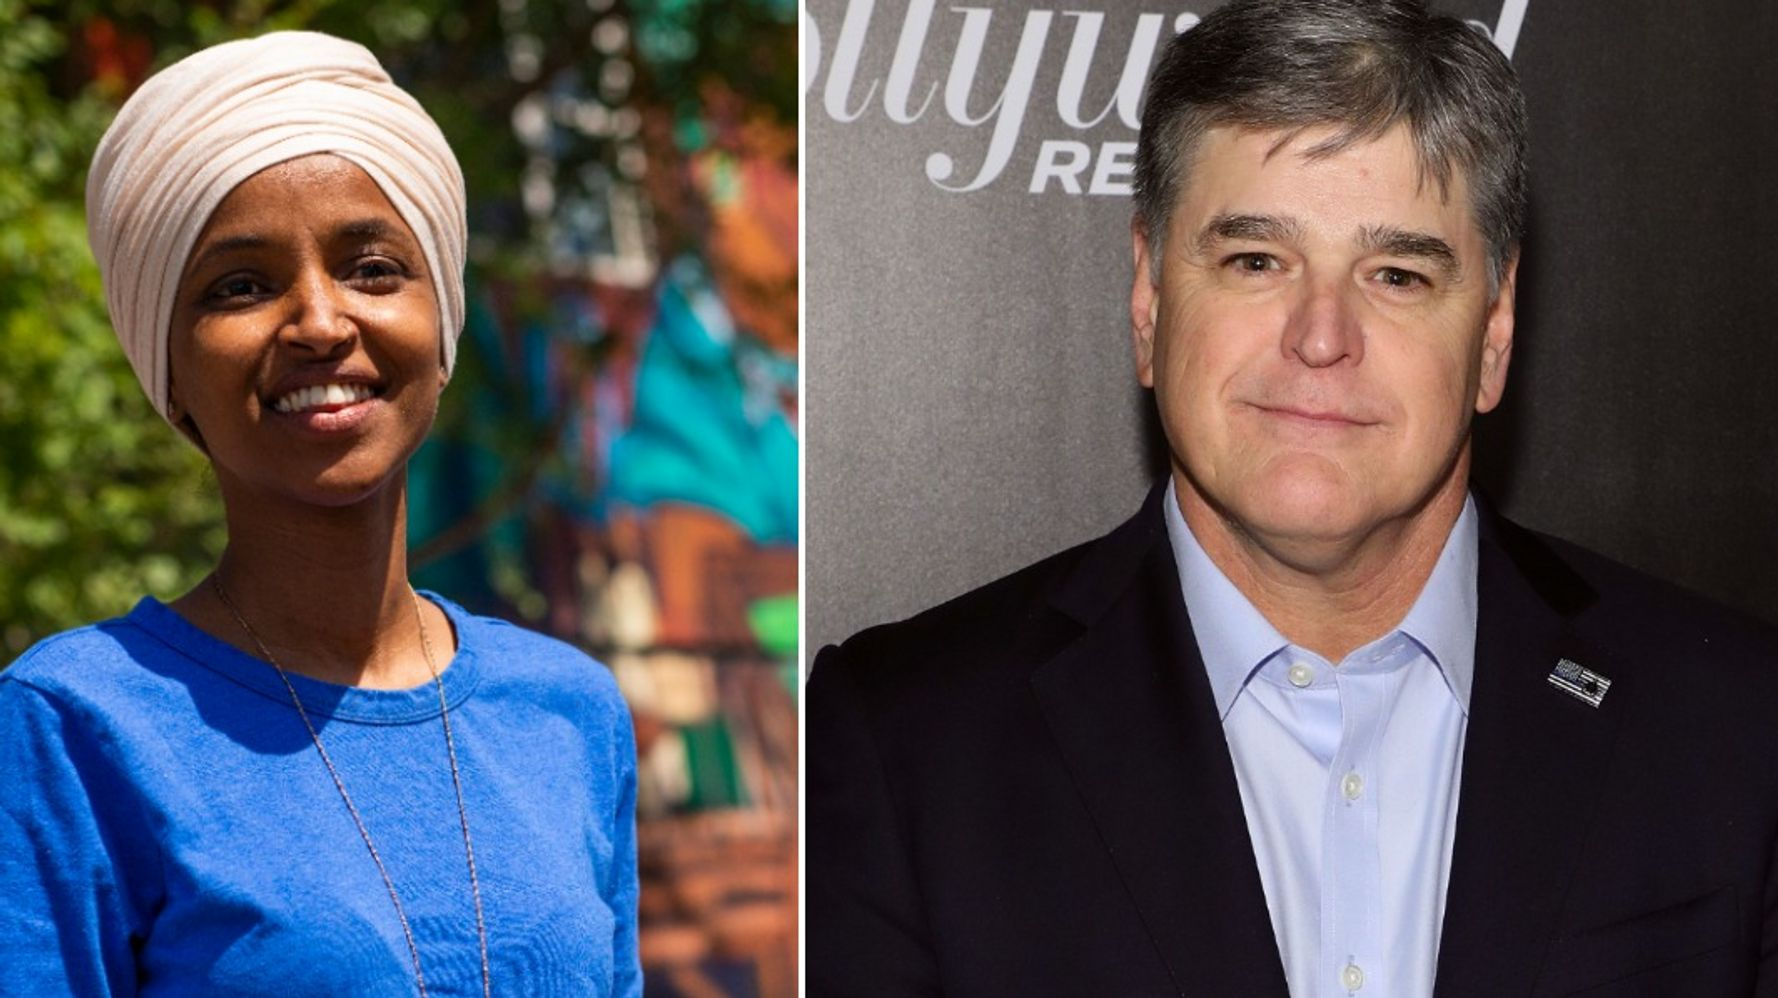 Sean Hannity's Tweet Calling Out Rep. Ilhan Omar's Voter Registration Message Backfires